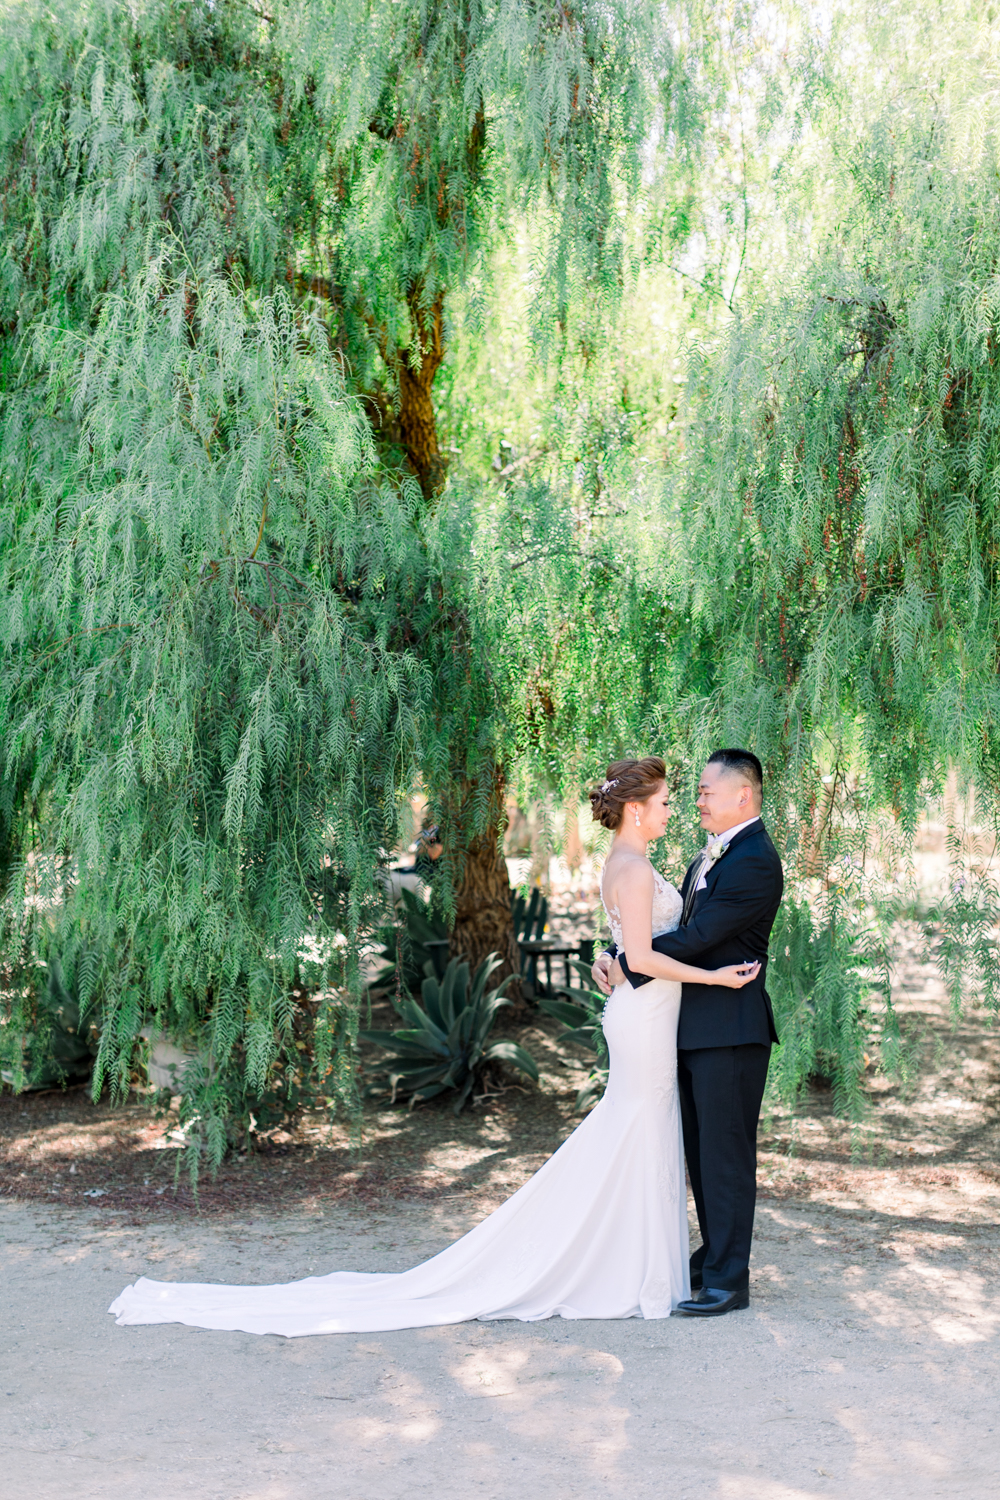 Pasadena Wedding - Arlington Gardens